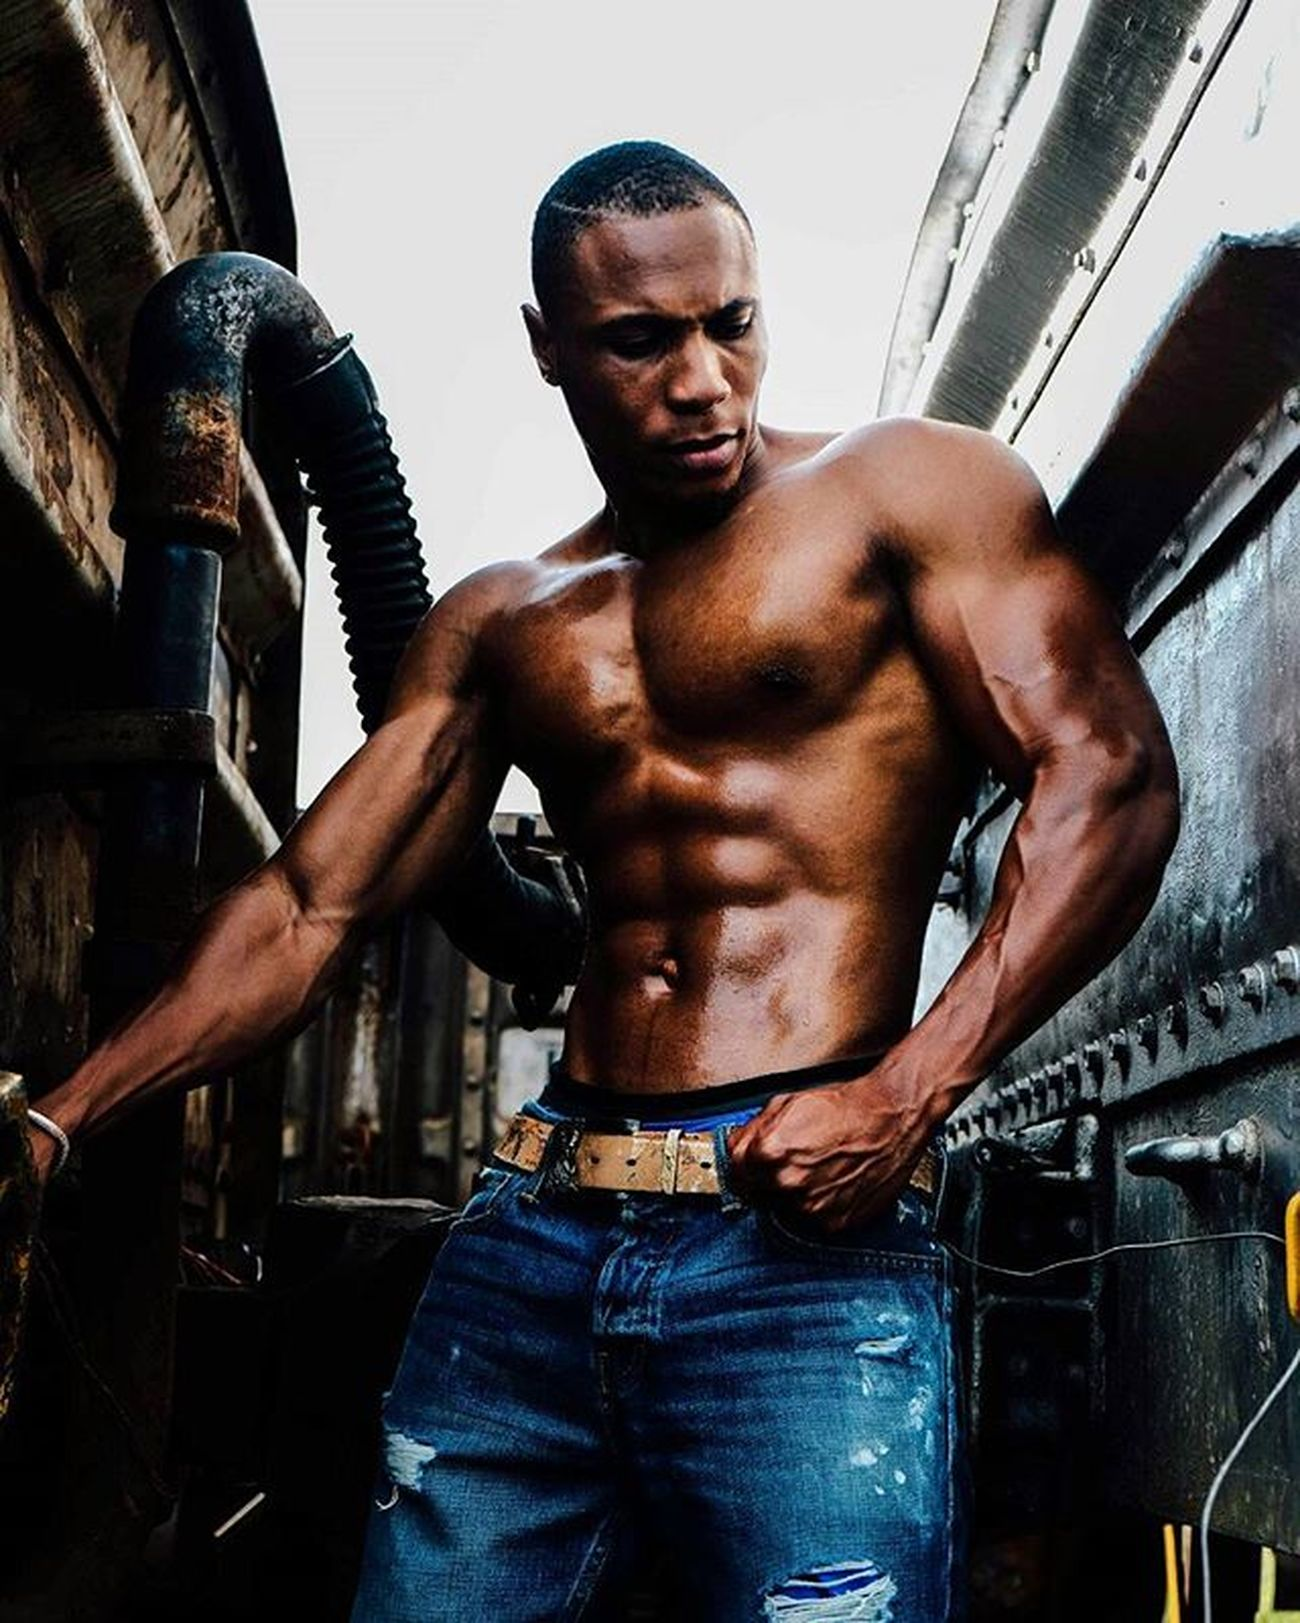 Fitness shoot with @nigelalto Fujifilm Fujifilmxt10 Fujifilmxseries Fitness Muscle Model Physic Gains Fitnessworld Fitnesscoach Fit Abs Chest Photoshoot Train Railway Exercise Gym